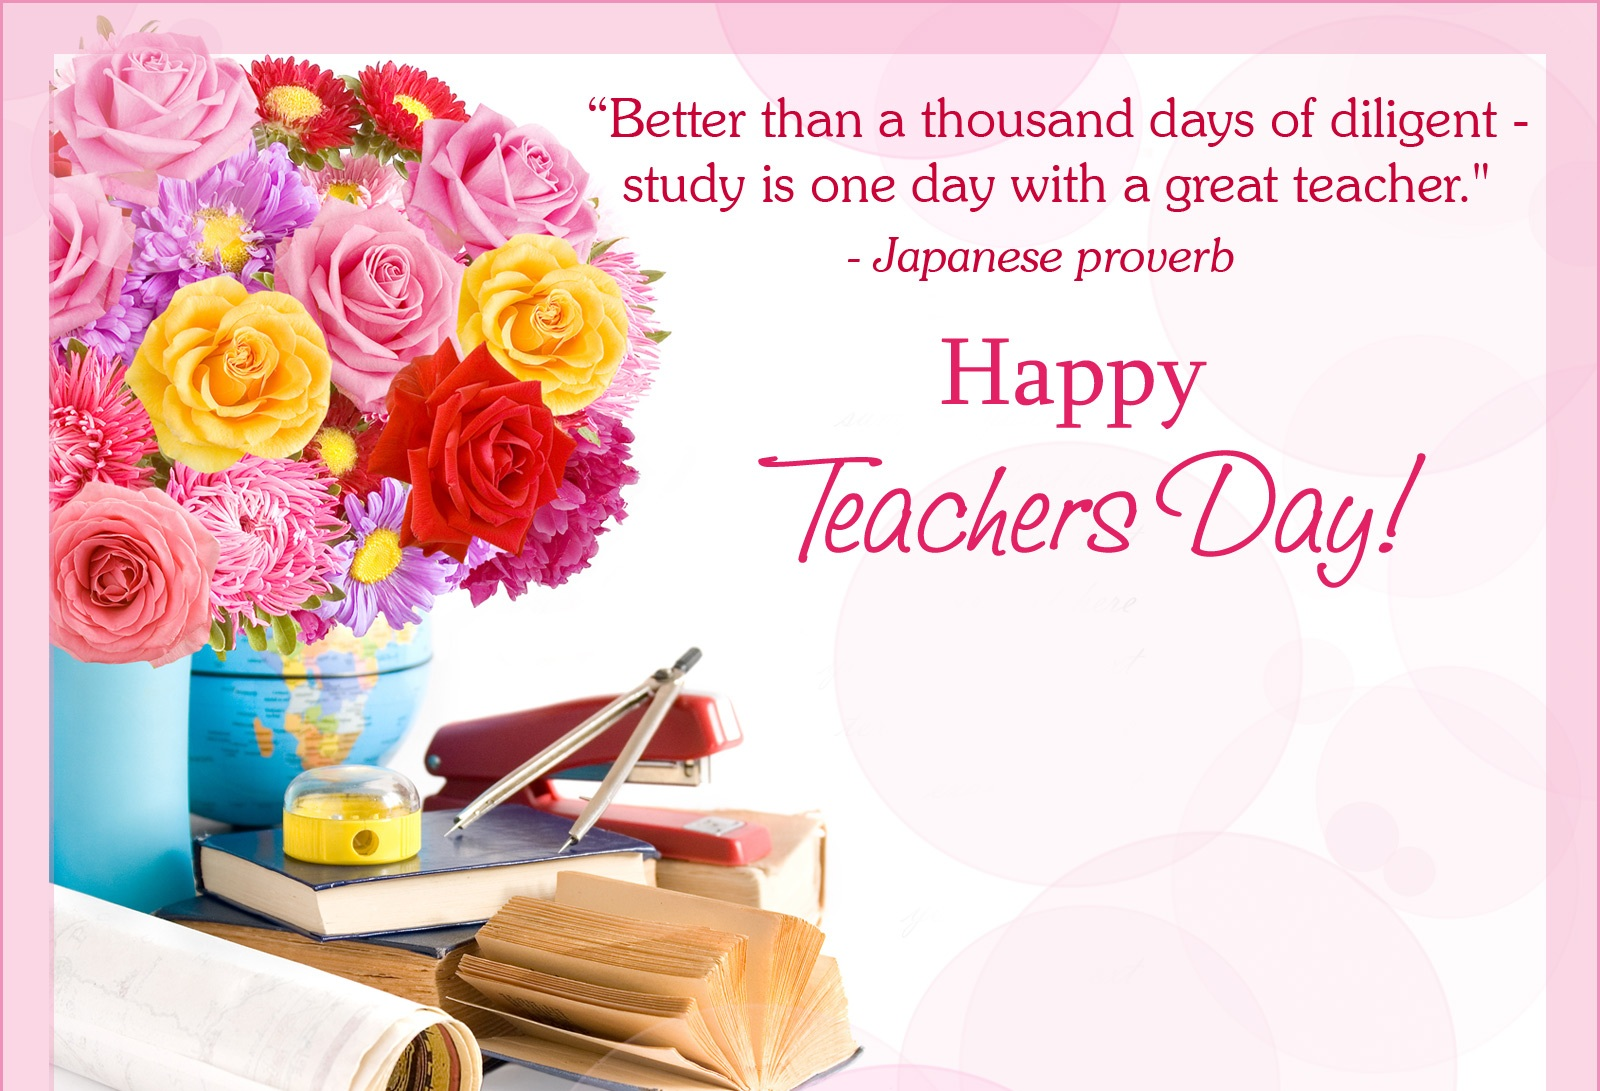 Teachers day images teachers day images teachers day images m4hsunfo